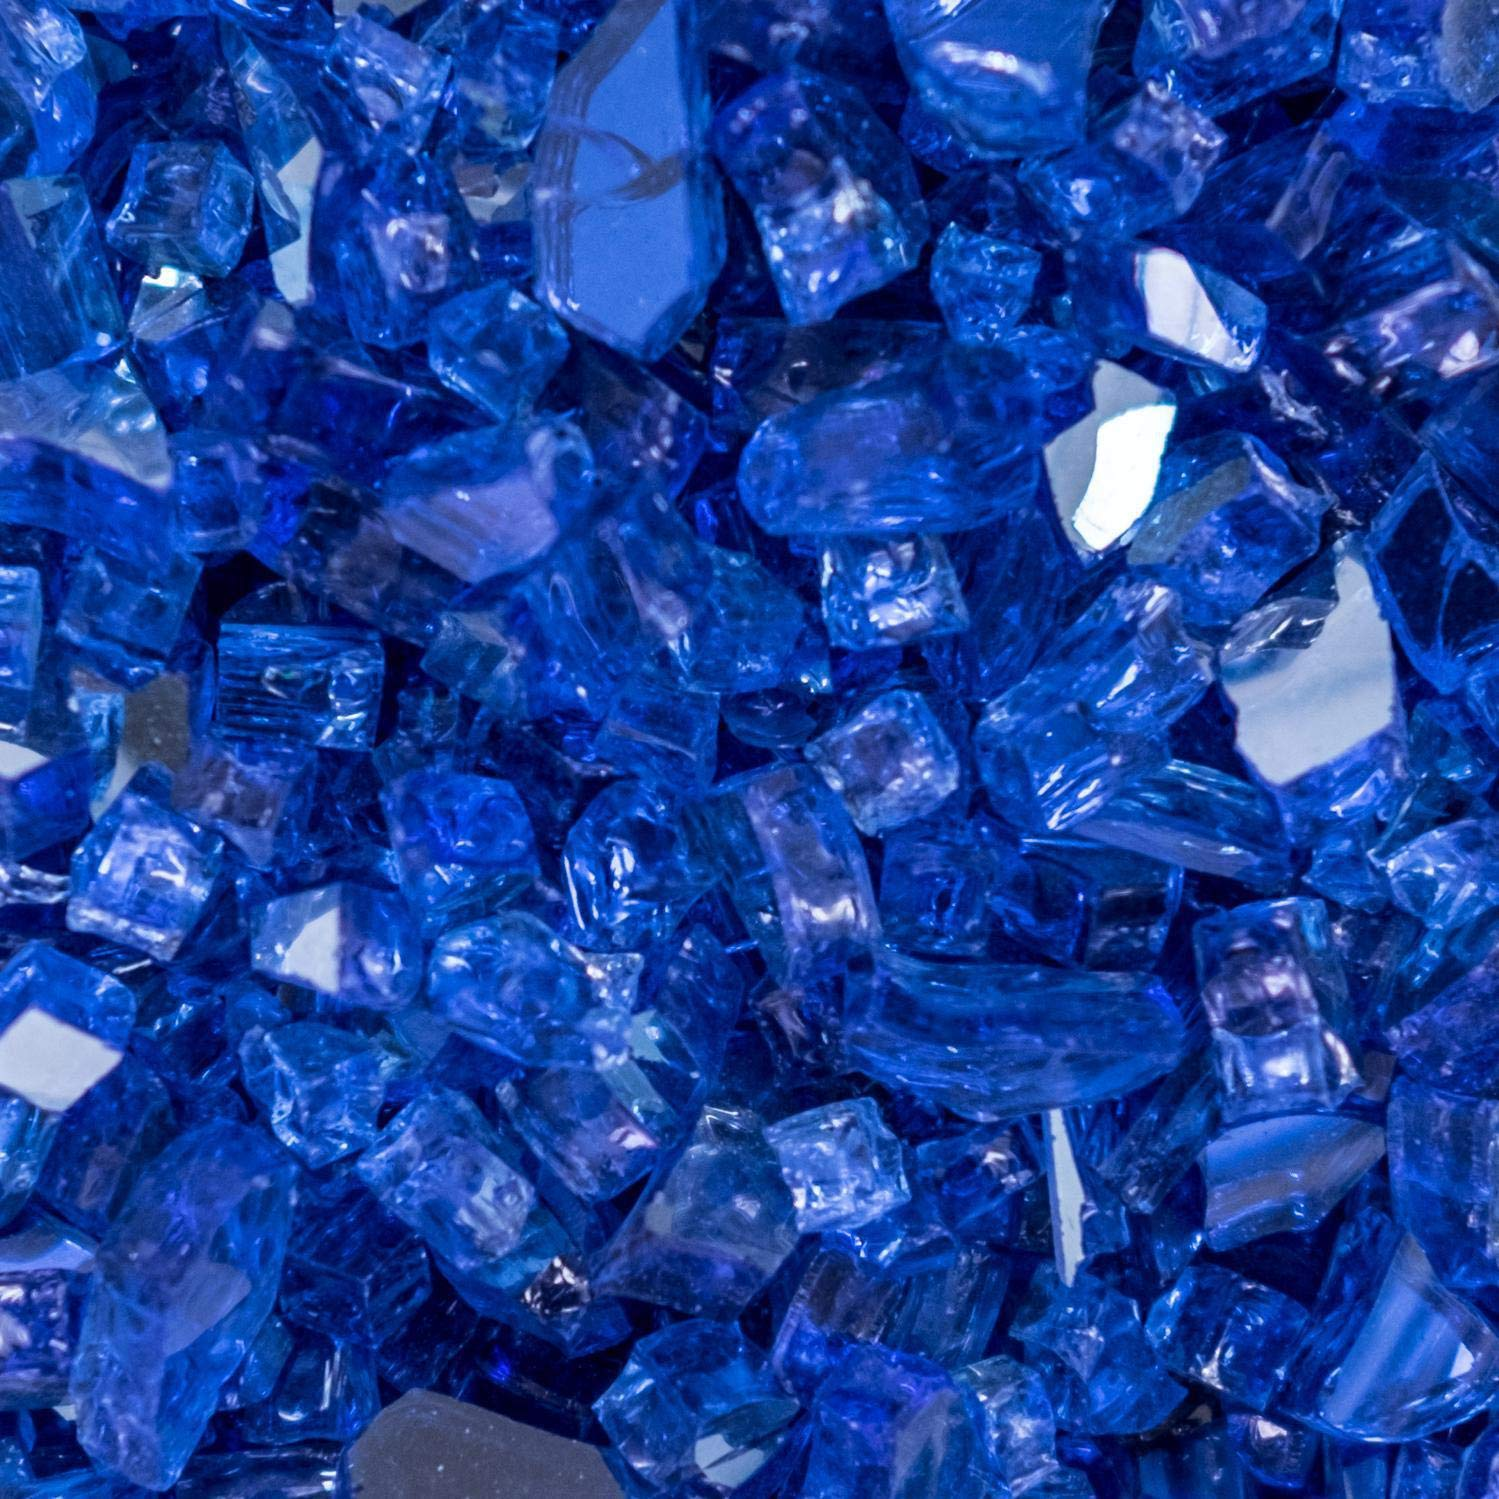 Lakeview Outdoor Designs 1/4-Inch Blue-Jay Reflective Fire Glass - 50 Pounds by Lakeview Outdoor Designs